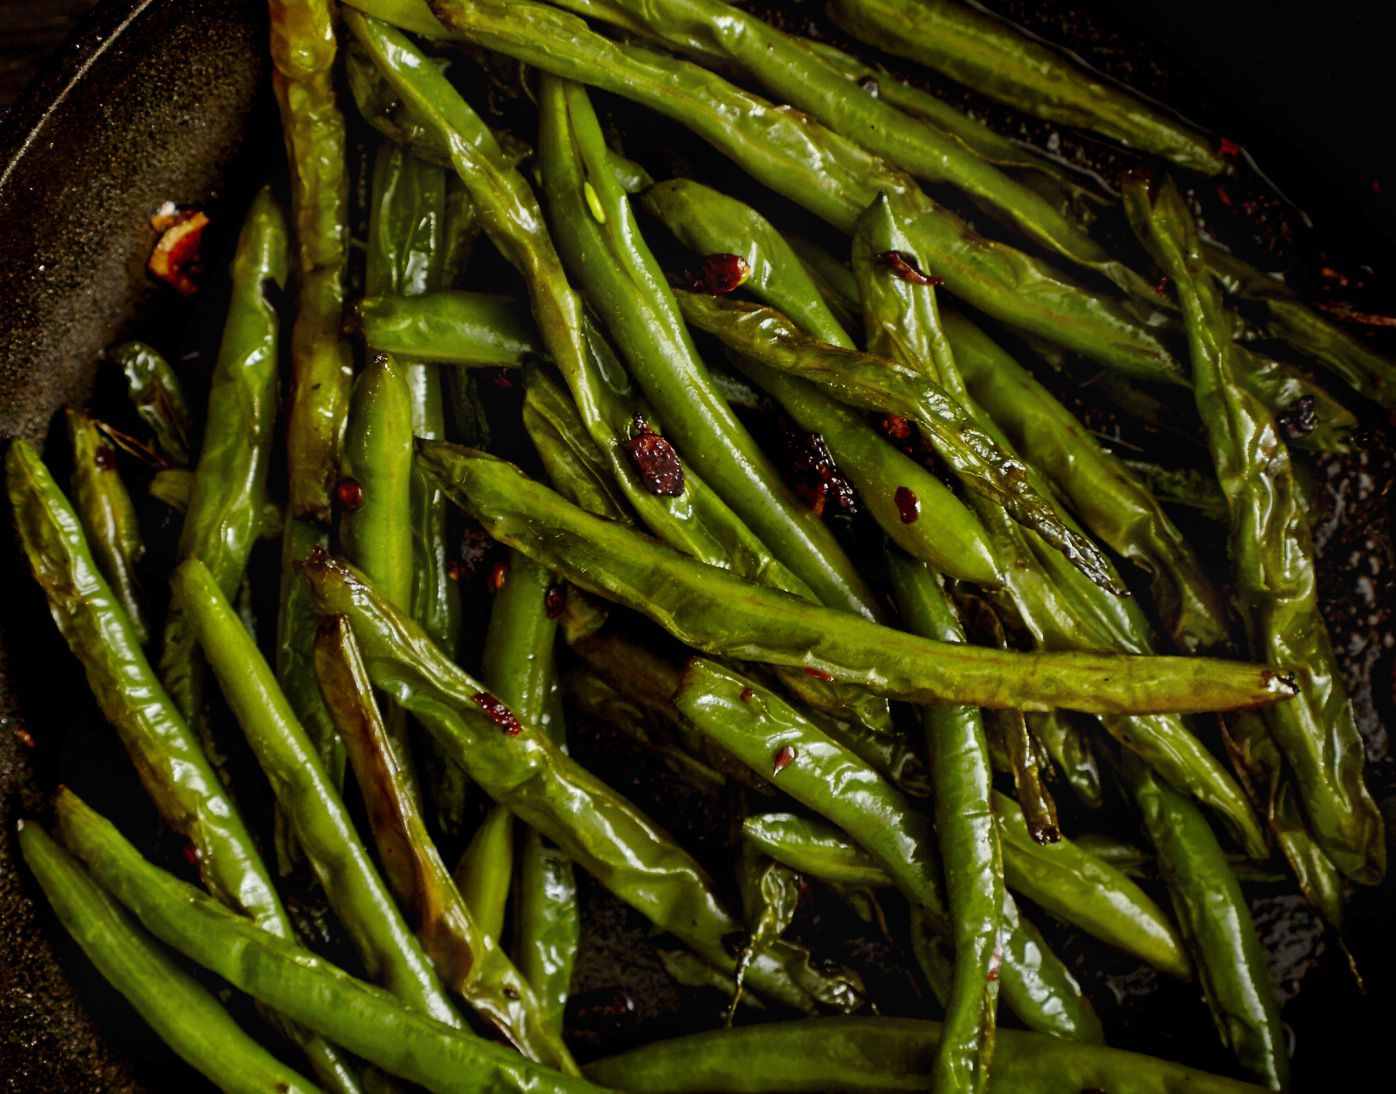 Vegan Vegetarian Asian Green Beans With Soy Sauce Recipe